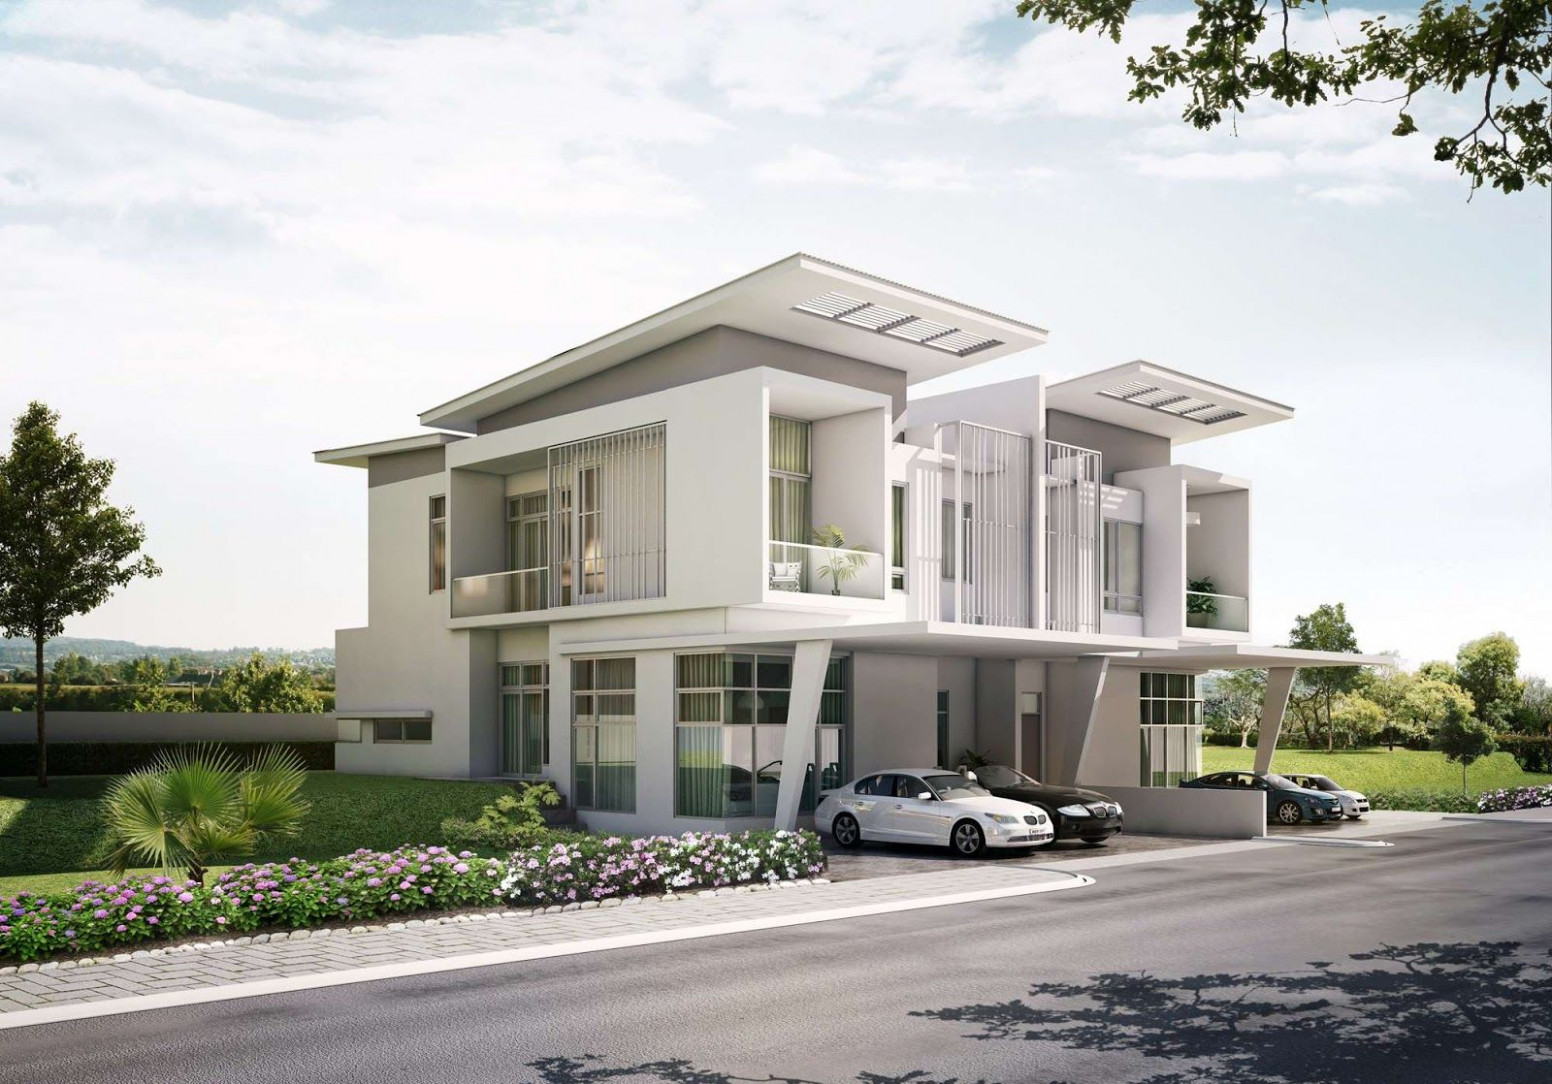 Modern Townhouse With Carport Google Search   Space Likes ..